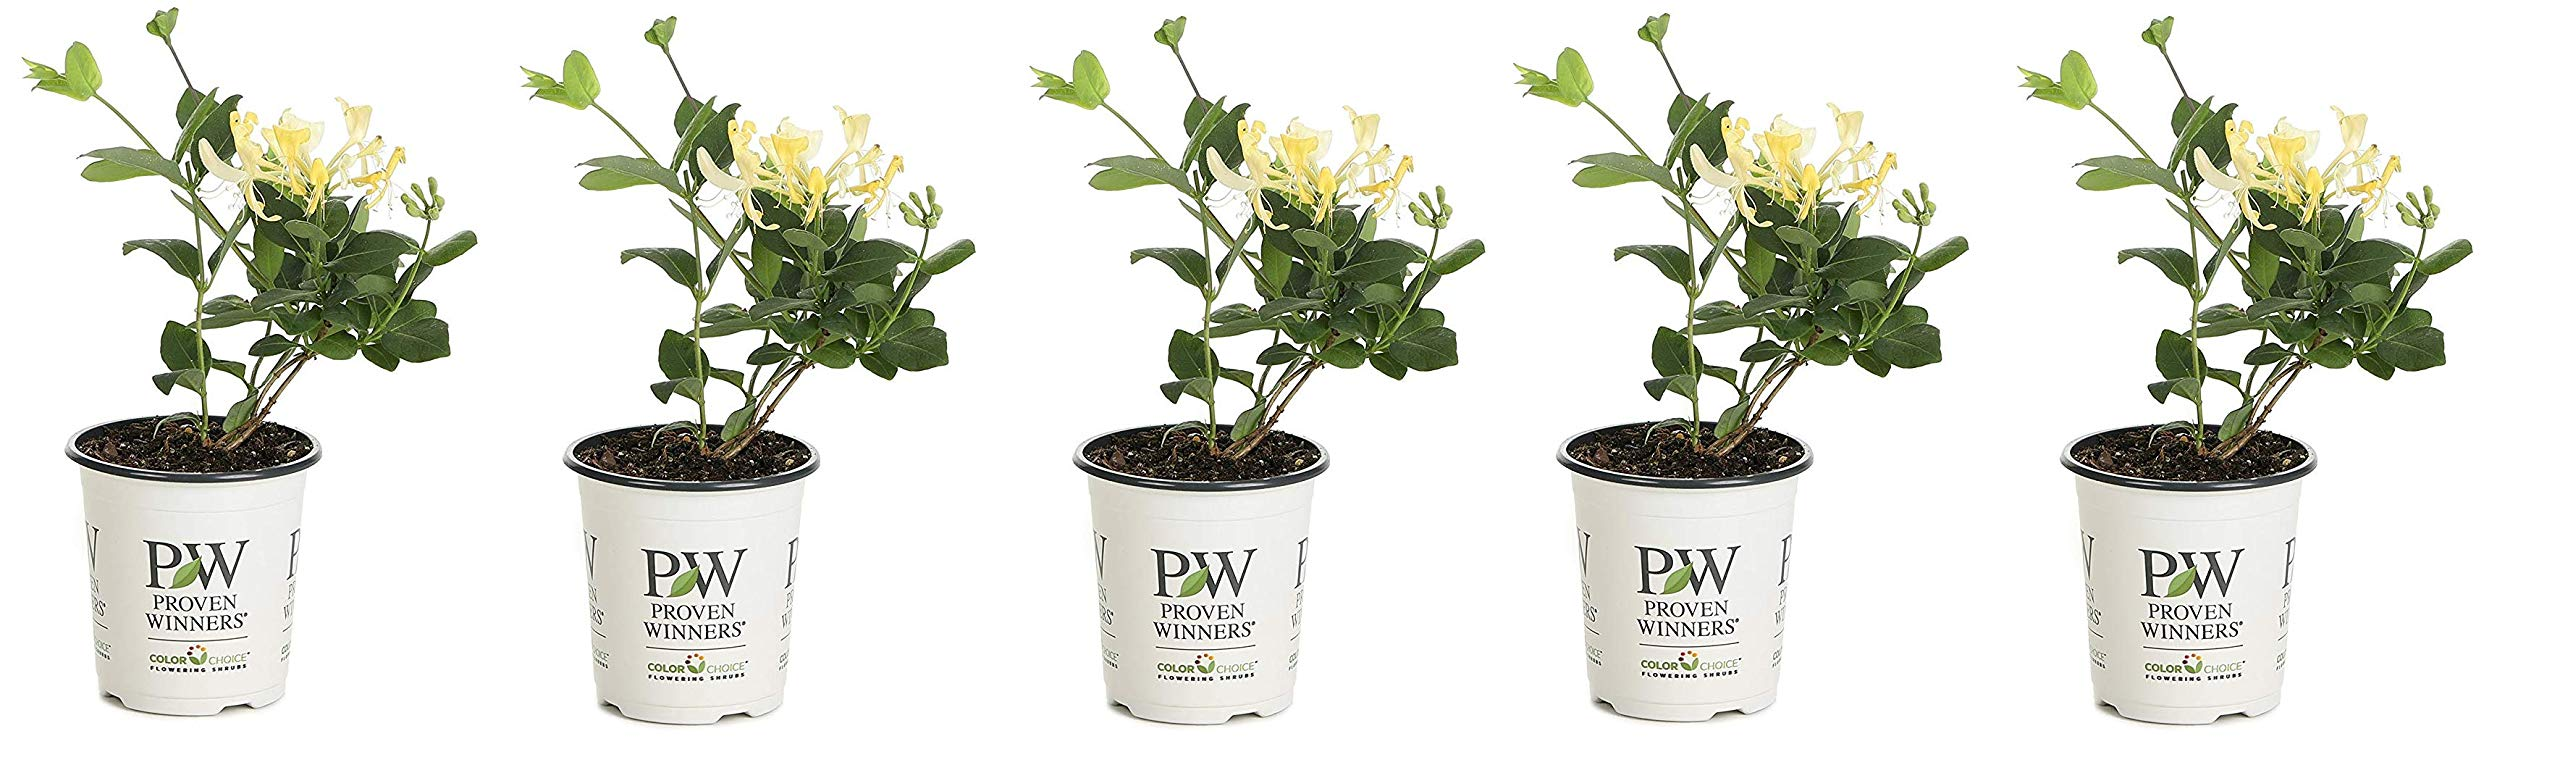 4.5 in. qt. Scentsation Honeysuckle (Lonicera) Live Shrub, Yellow Flowers and Red Berries (Fivе Расk)